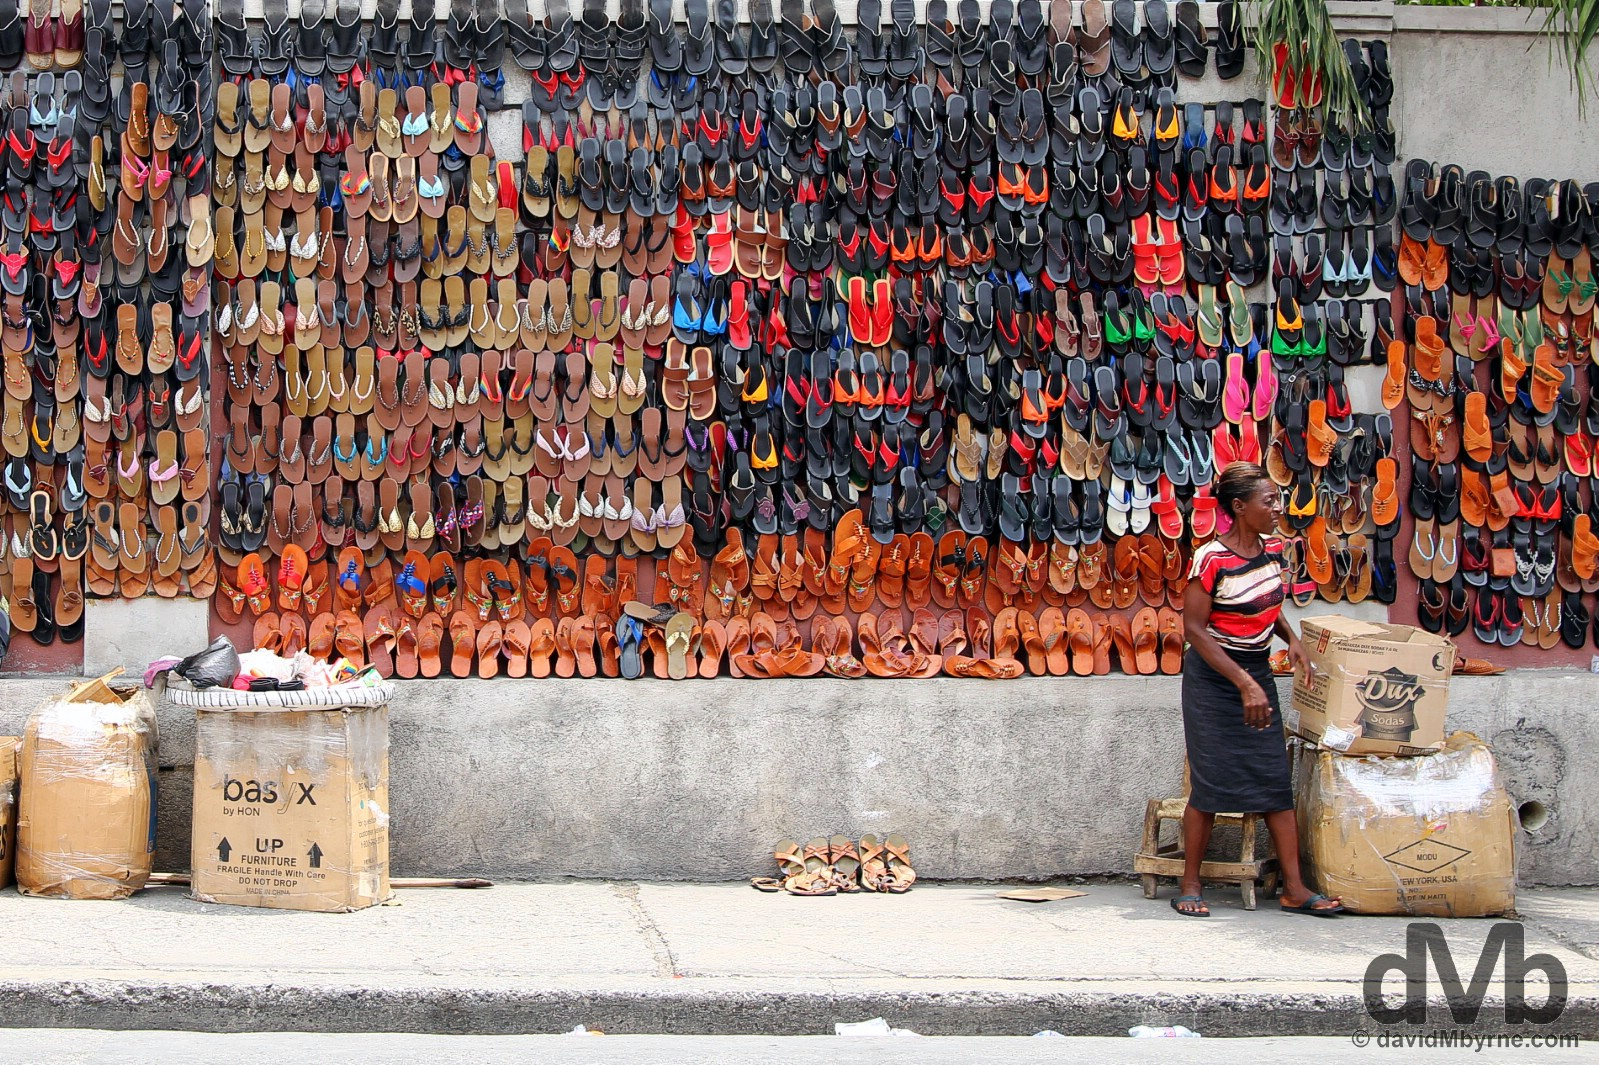 On the streets of Port-Au-Prince, Haiti. May 17, 2015.